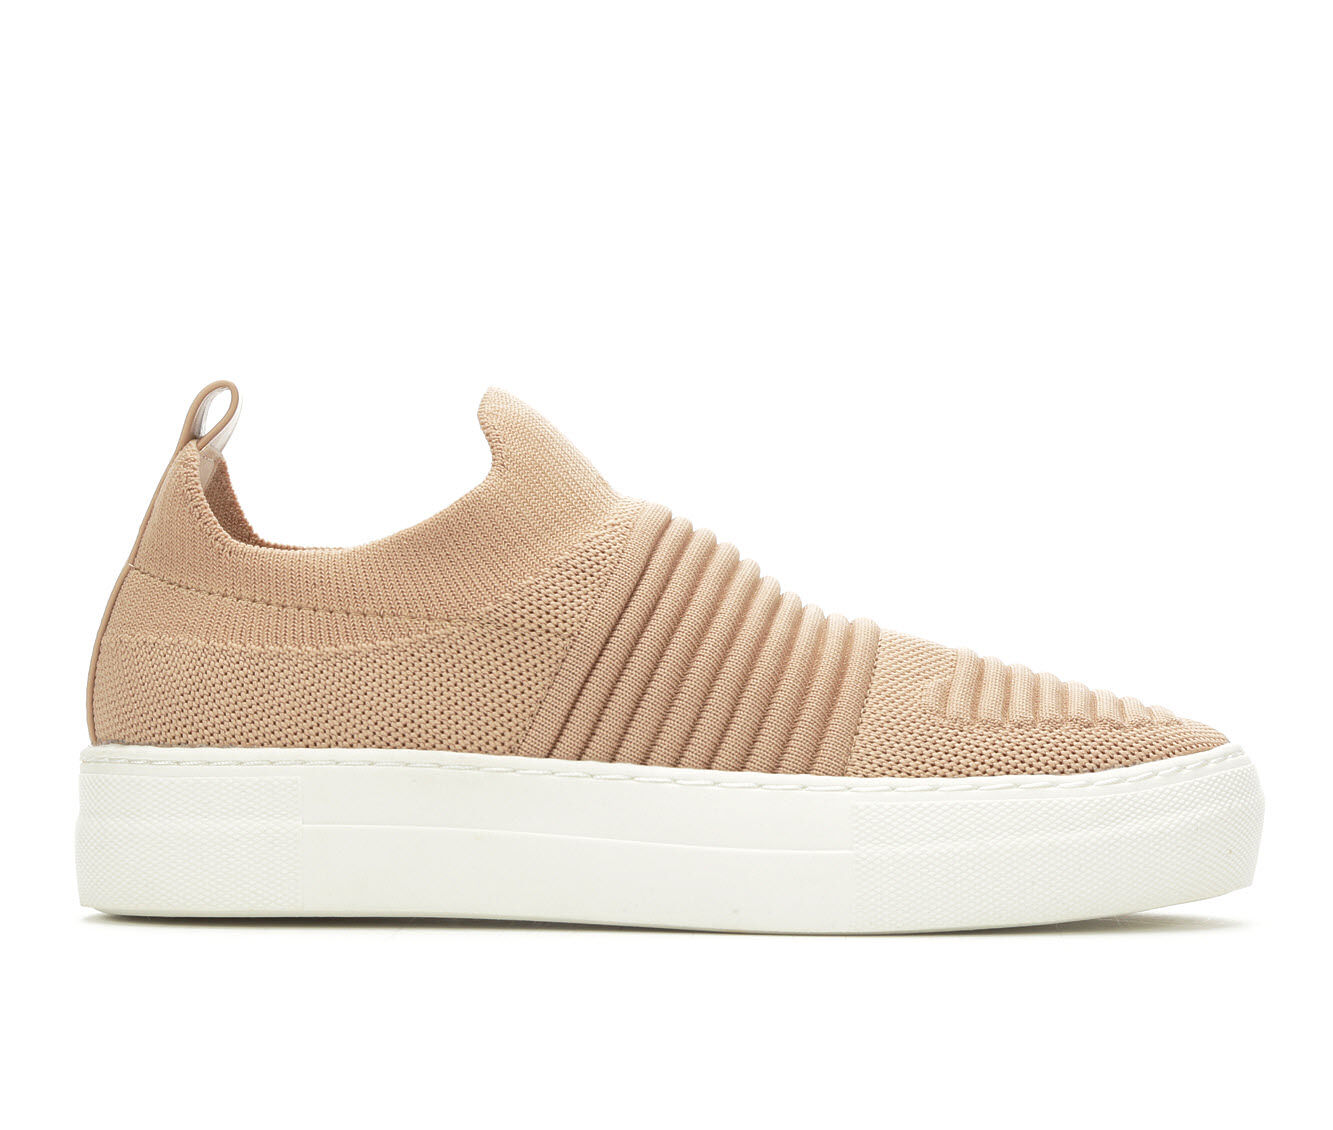 best deals Women's Madden Girl Brytney Sneakers Blush Knit